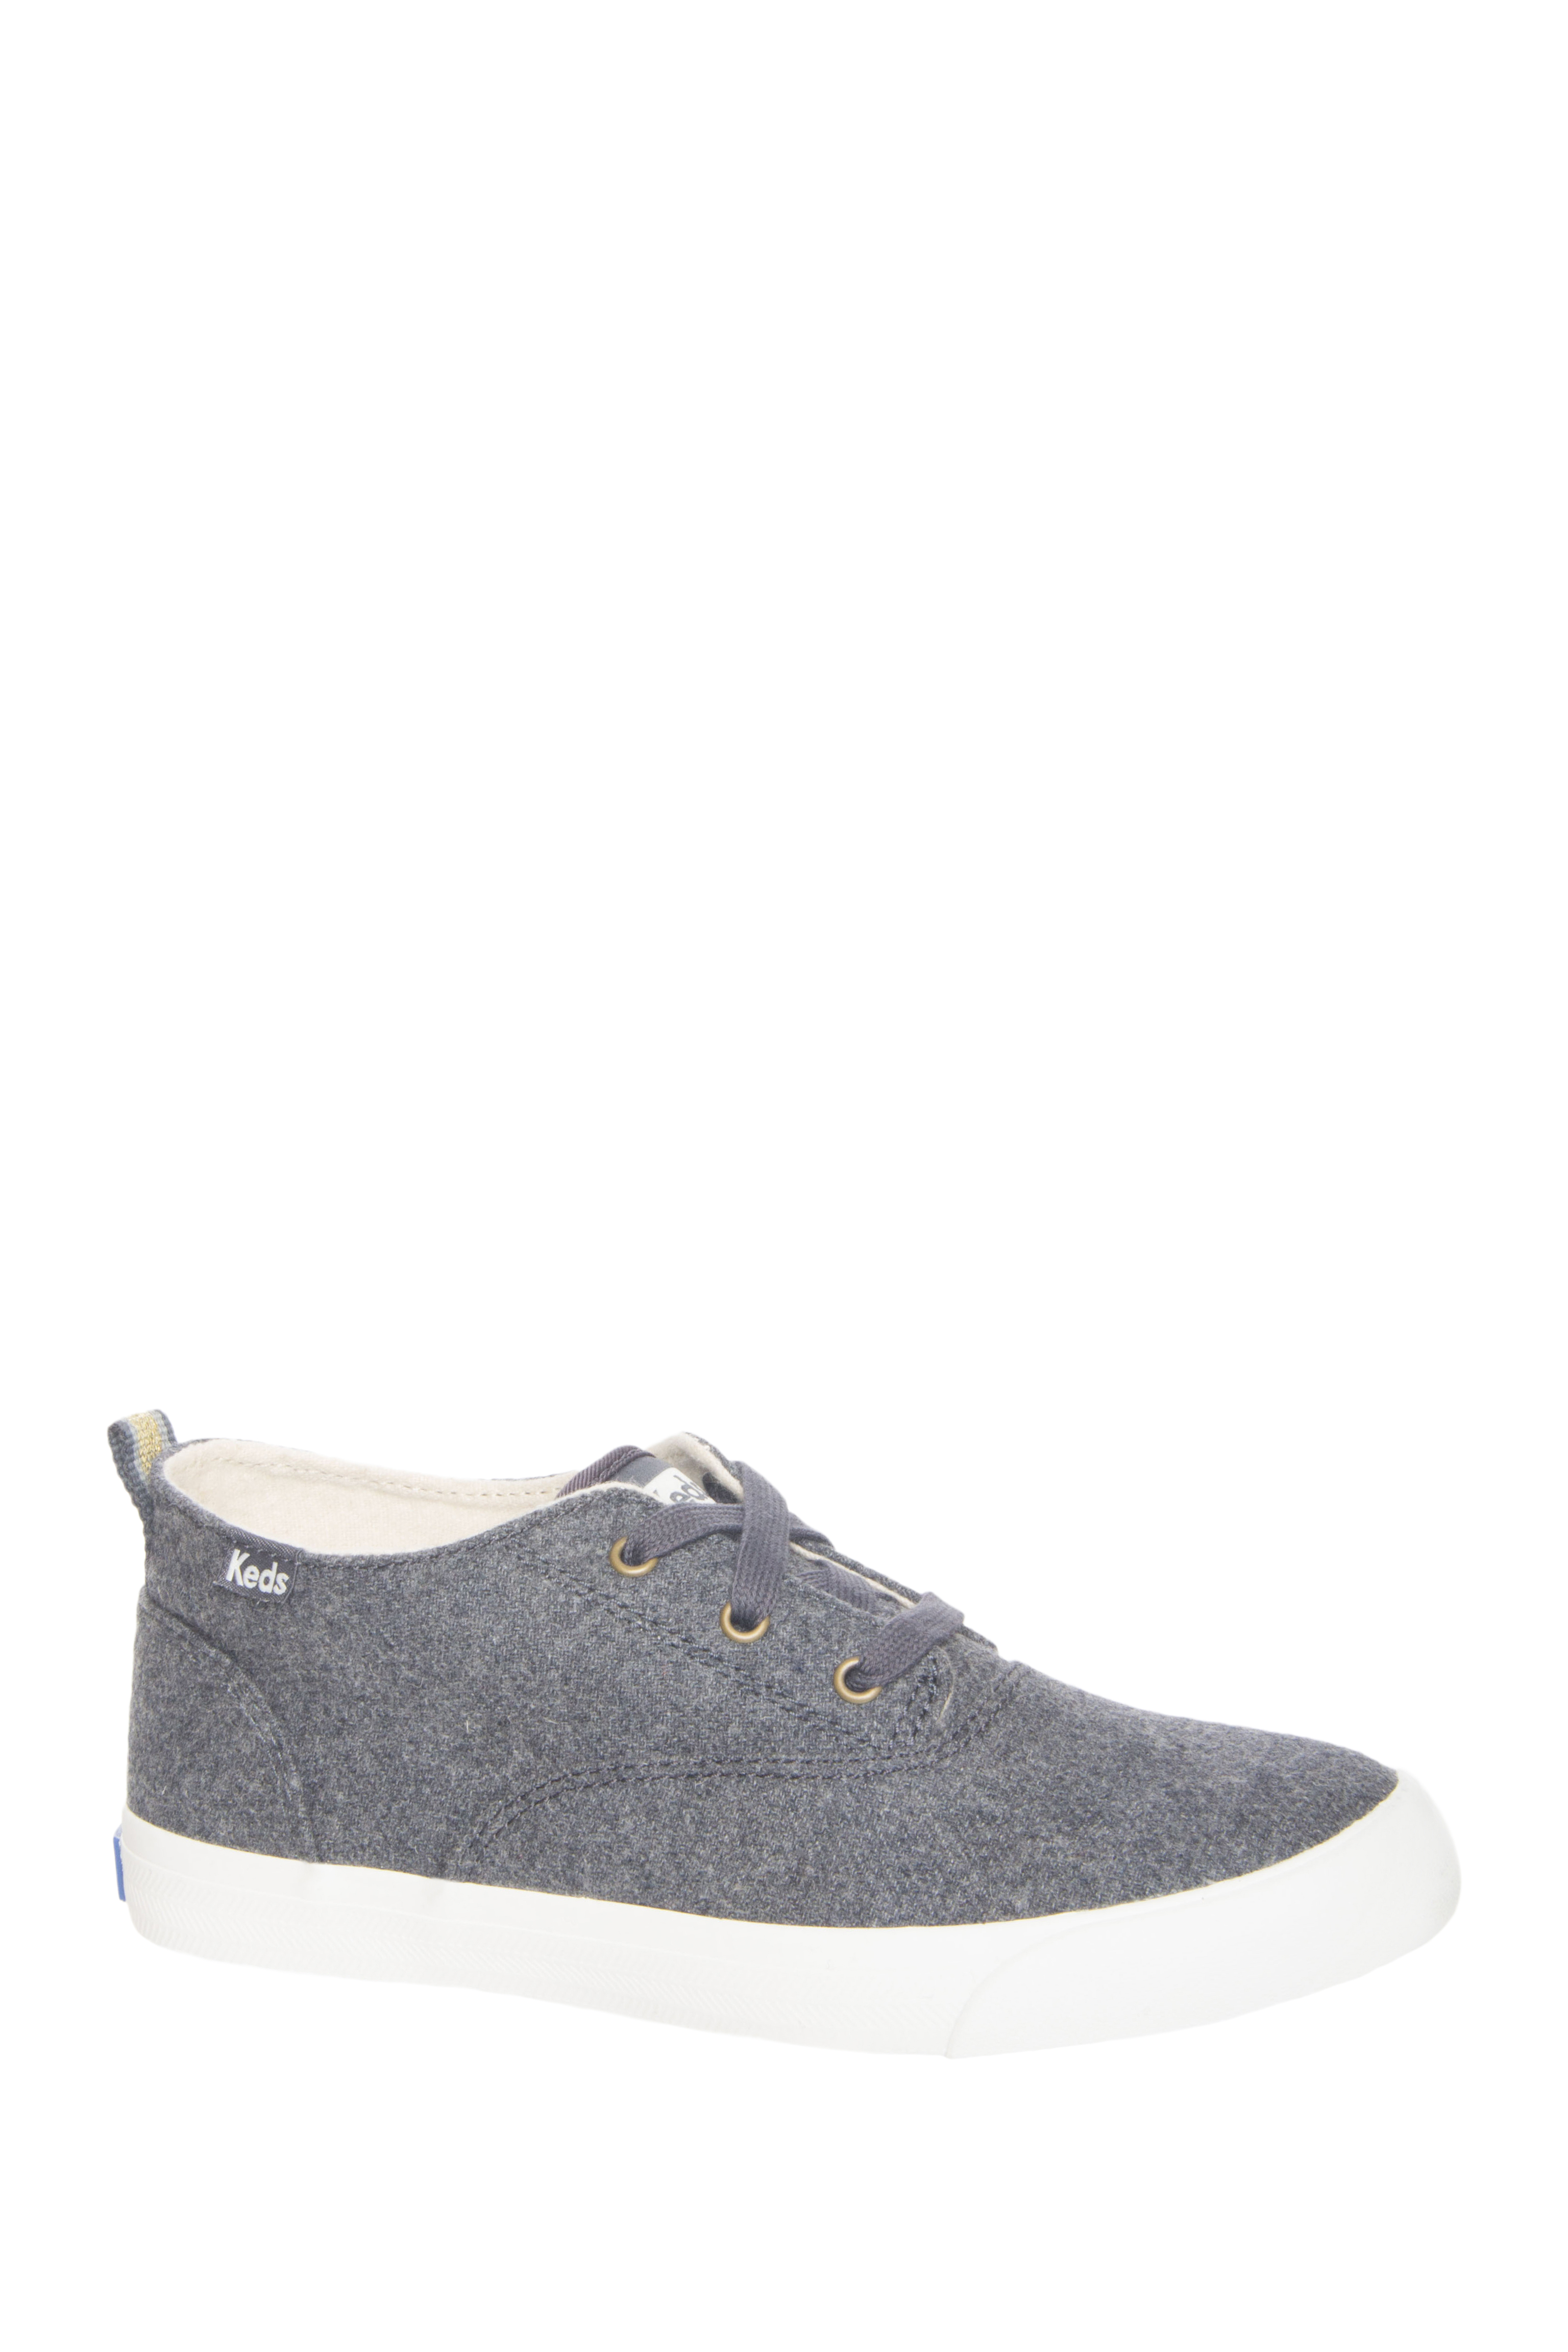 Keds Triumph Mid Top Wool Sneakers - Graphite